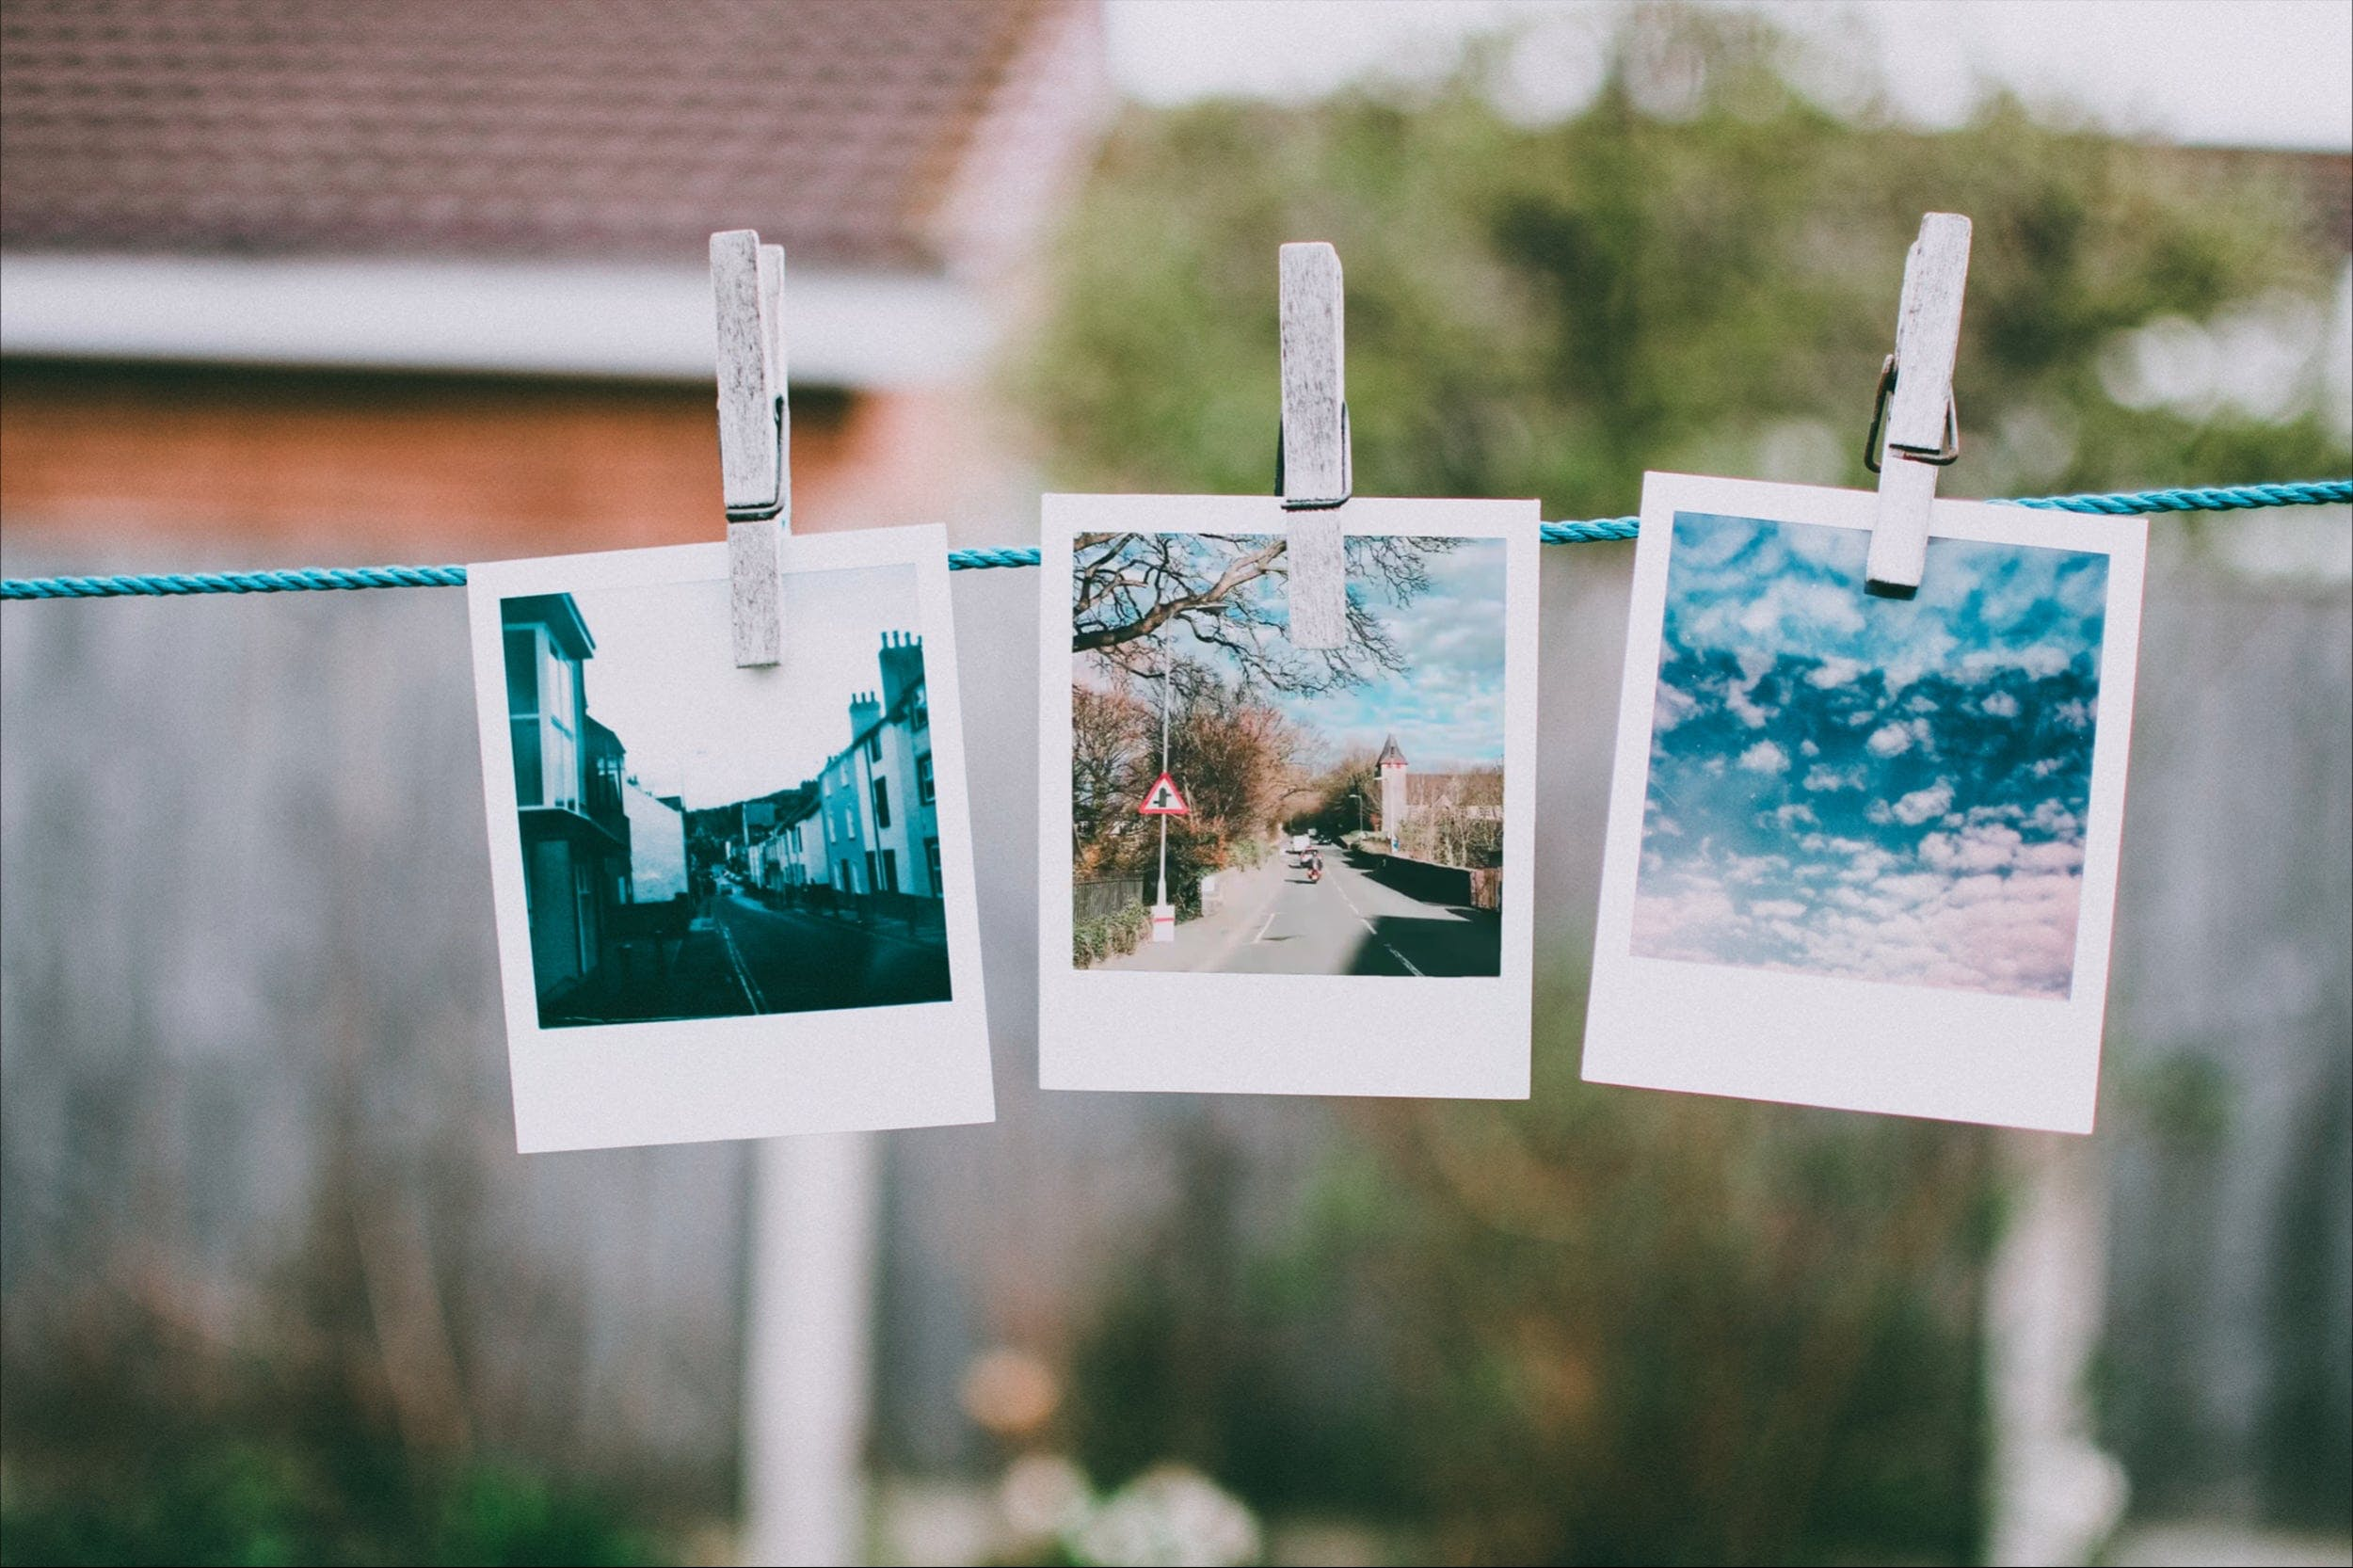 Pictures Hanging On Clothesline